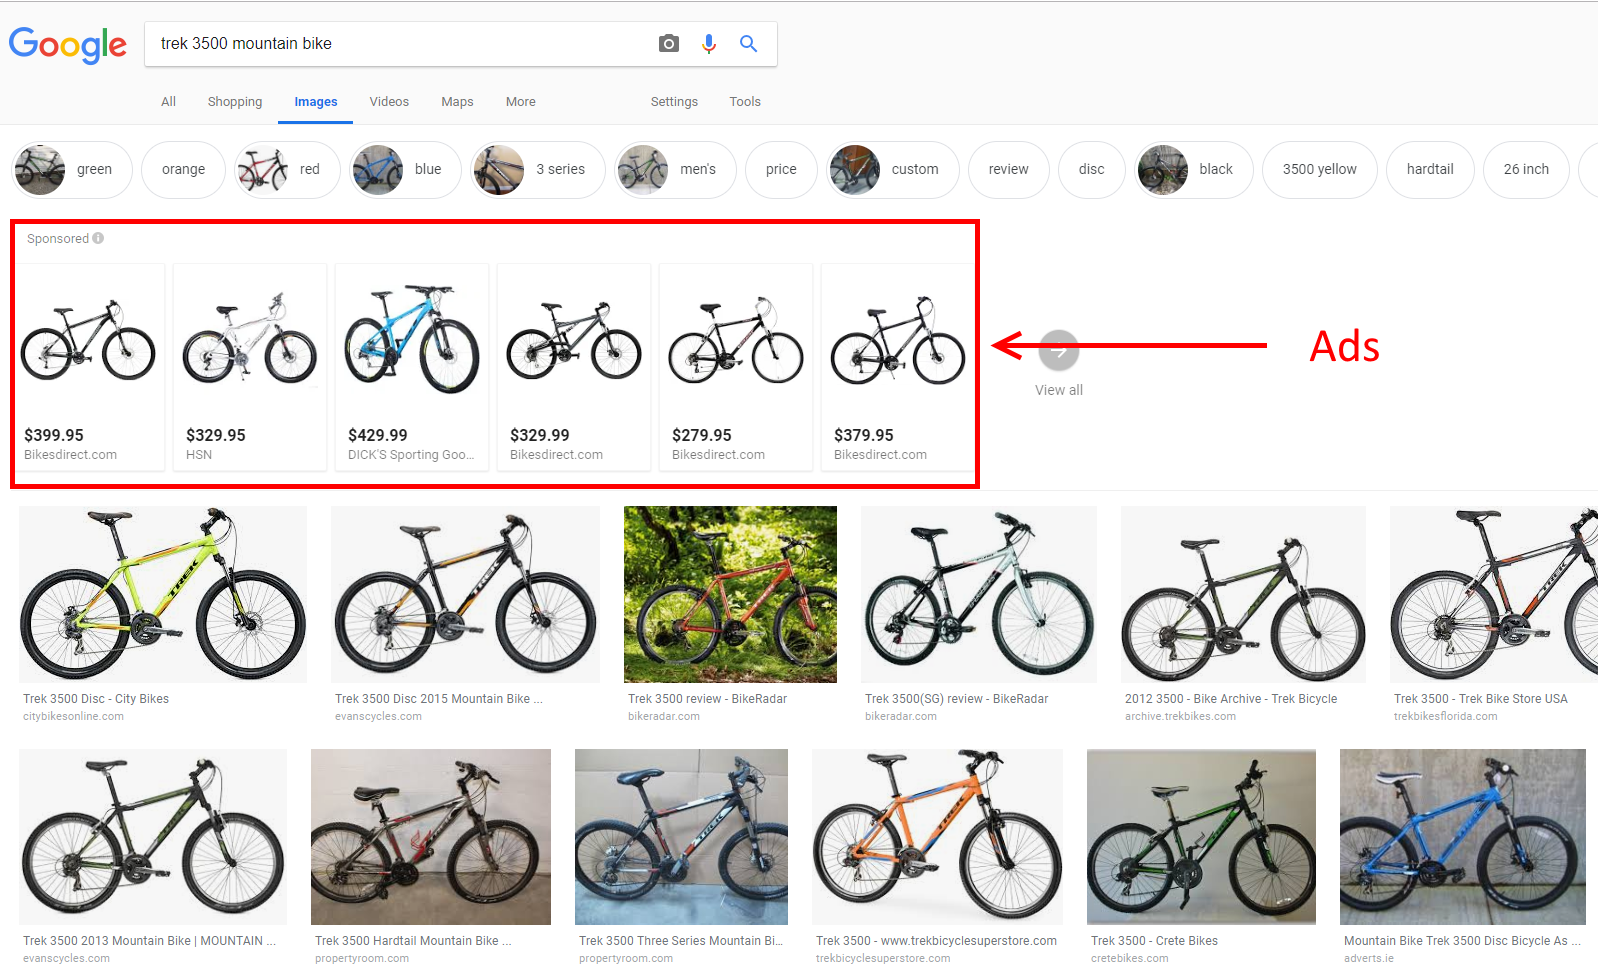 Shopping ads and organic listings are nearly identical in a SERP in Google Images for a Trek 3500 mountain bike. Click image to enlarge.